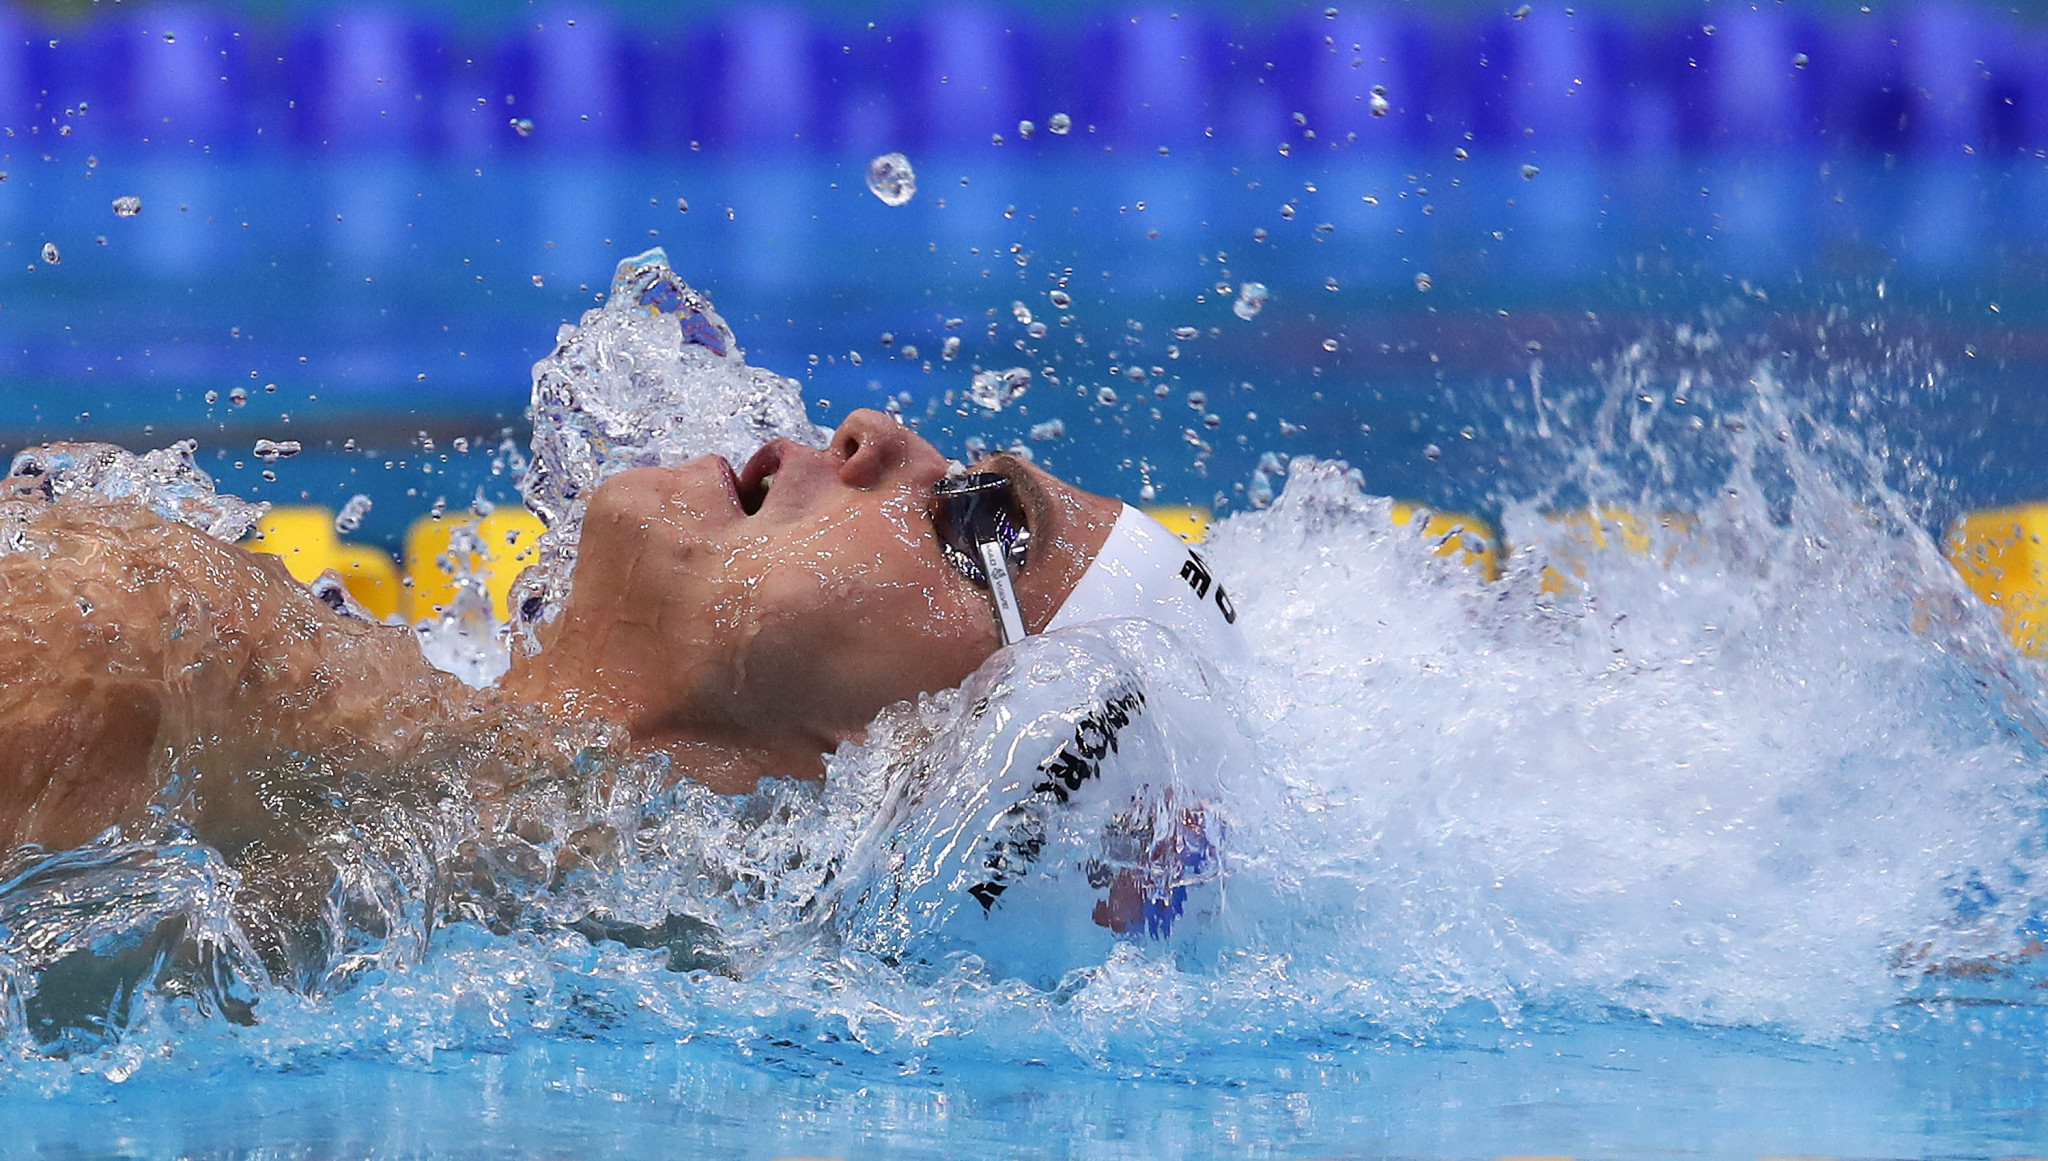 Morozov wins again as Romanchuk breaks record at FINA World Cup